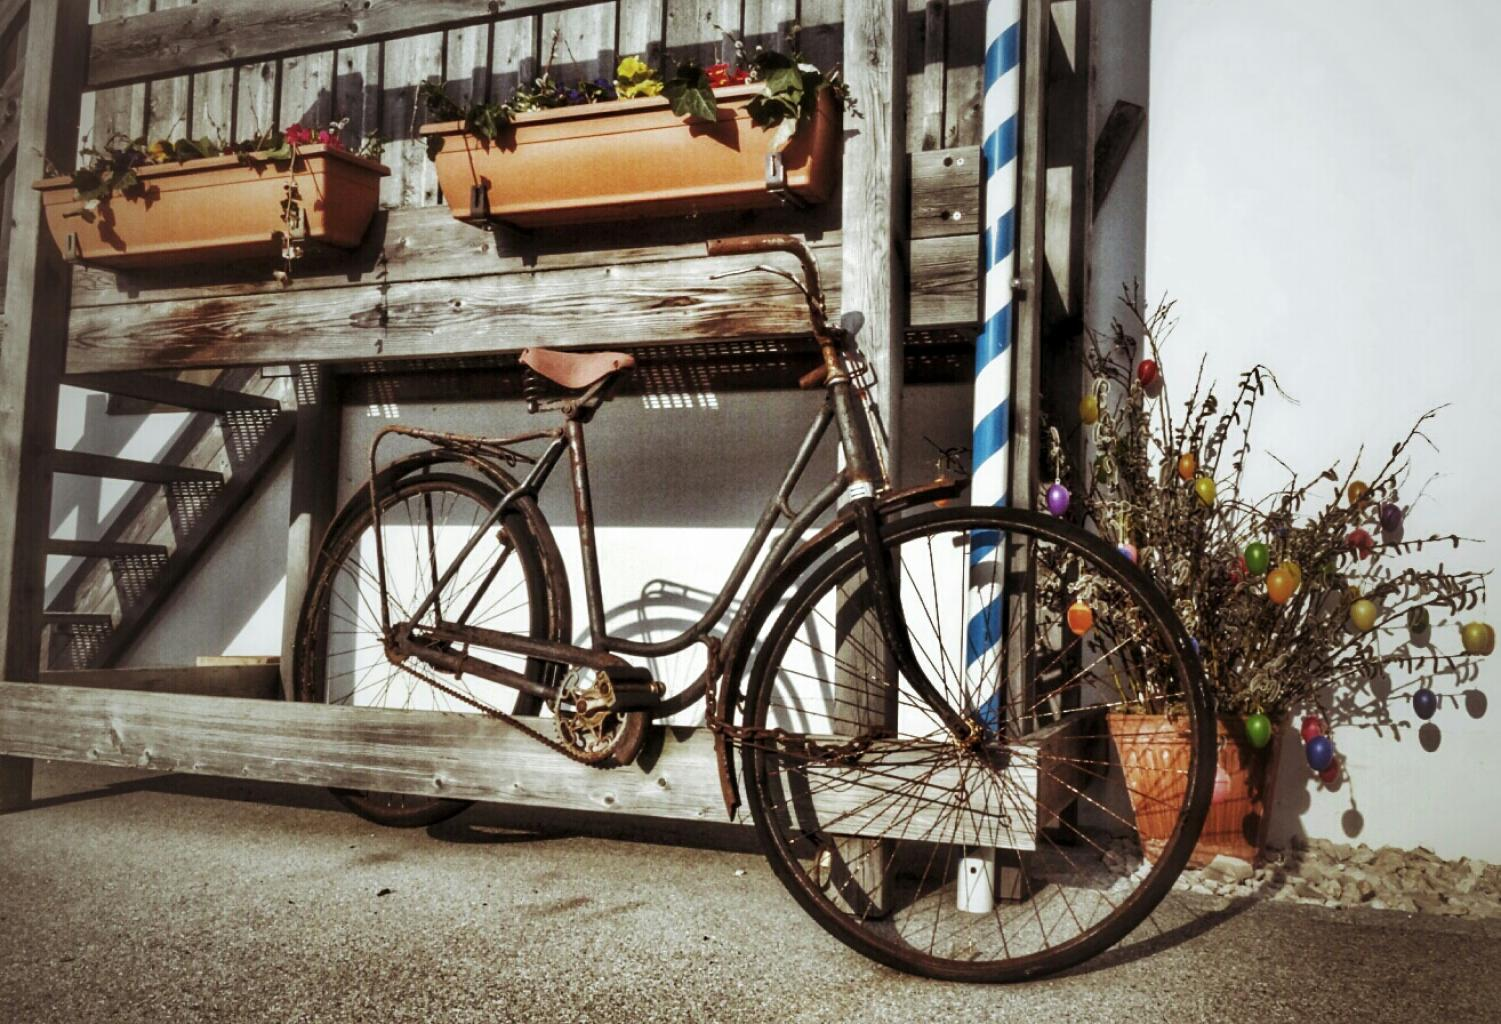 Bicycle and flower pots photo